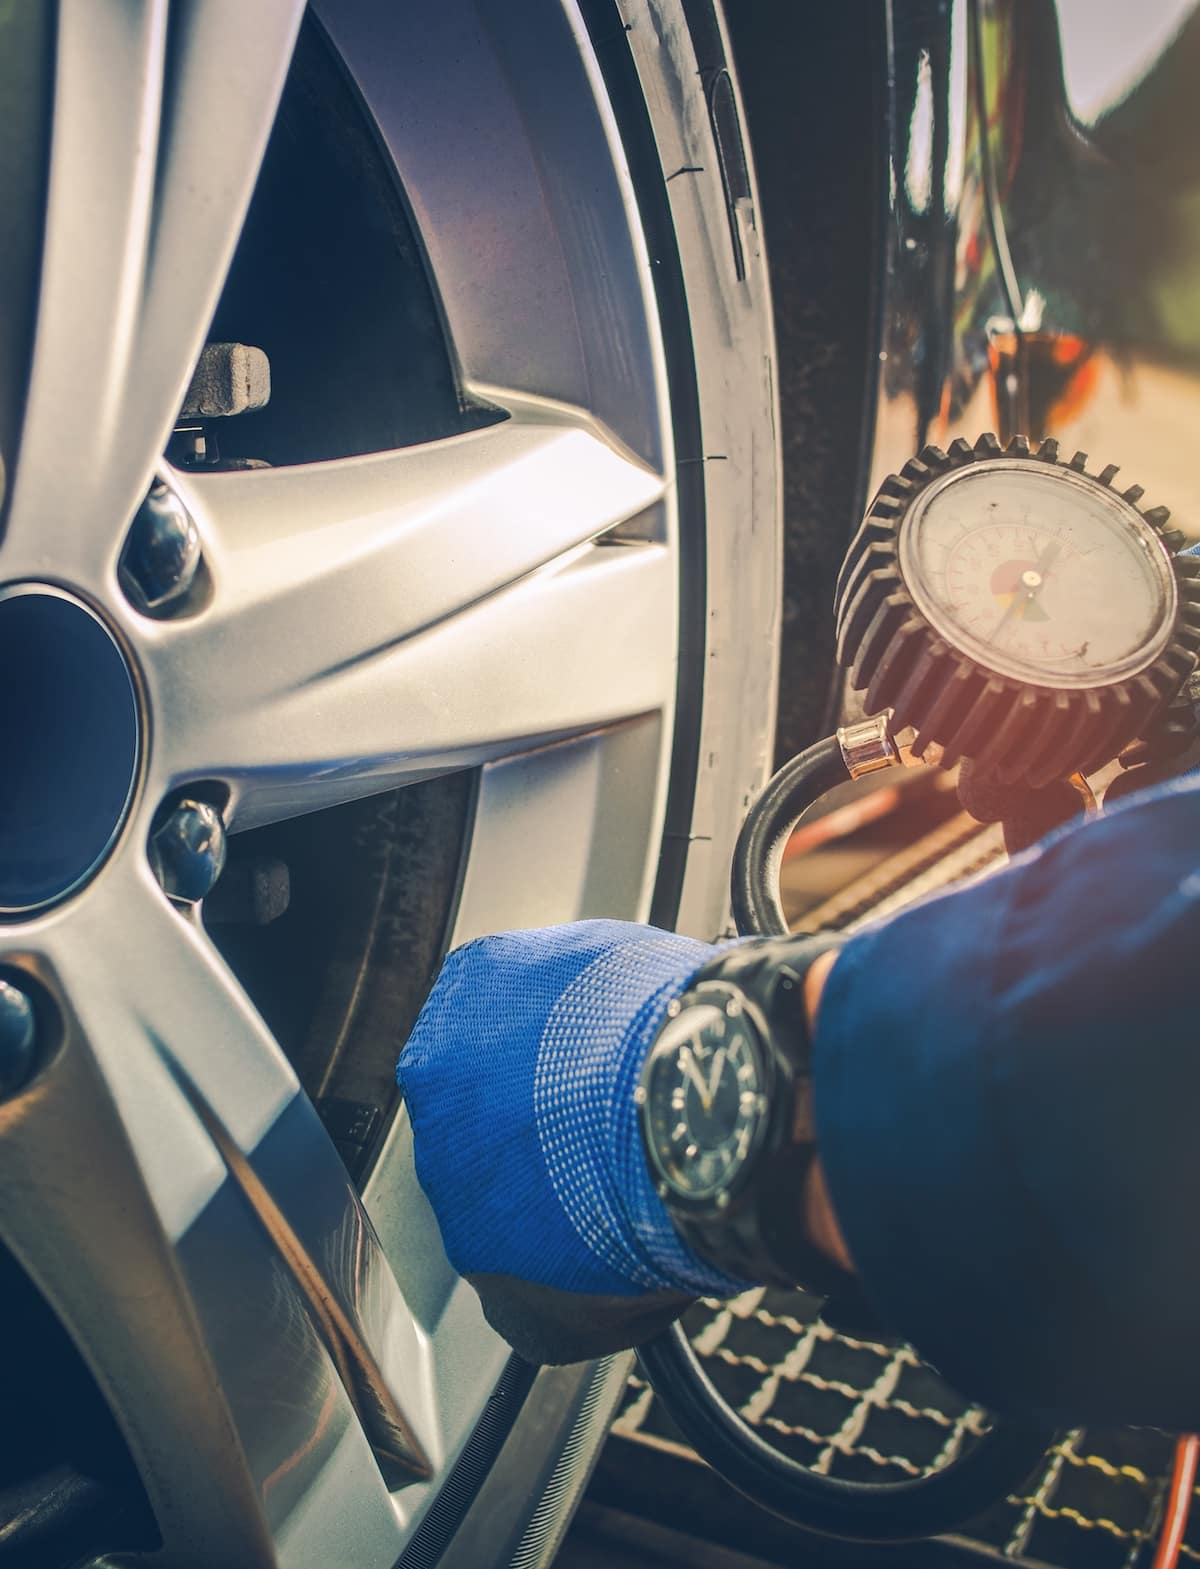 How to check your tires' health at Hanover Volkswagen | Man checking tire pressure